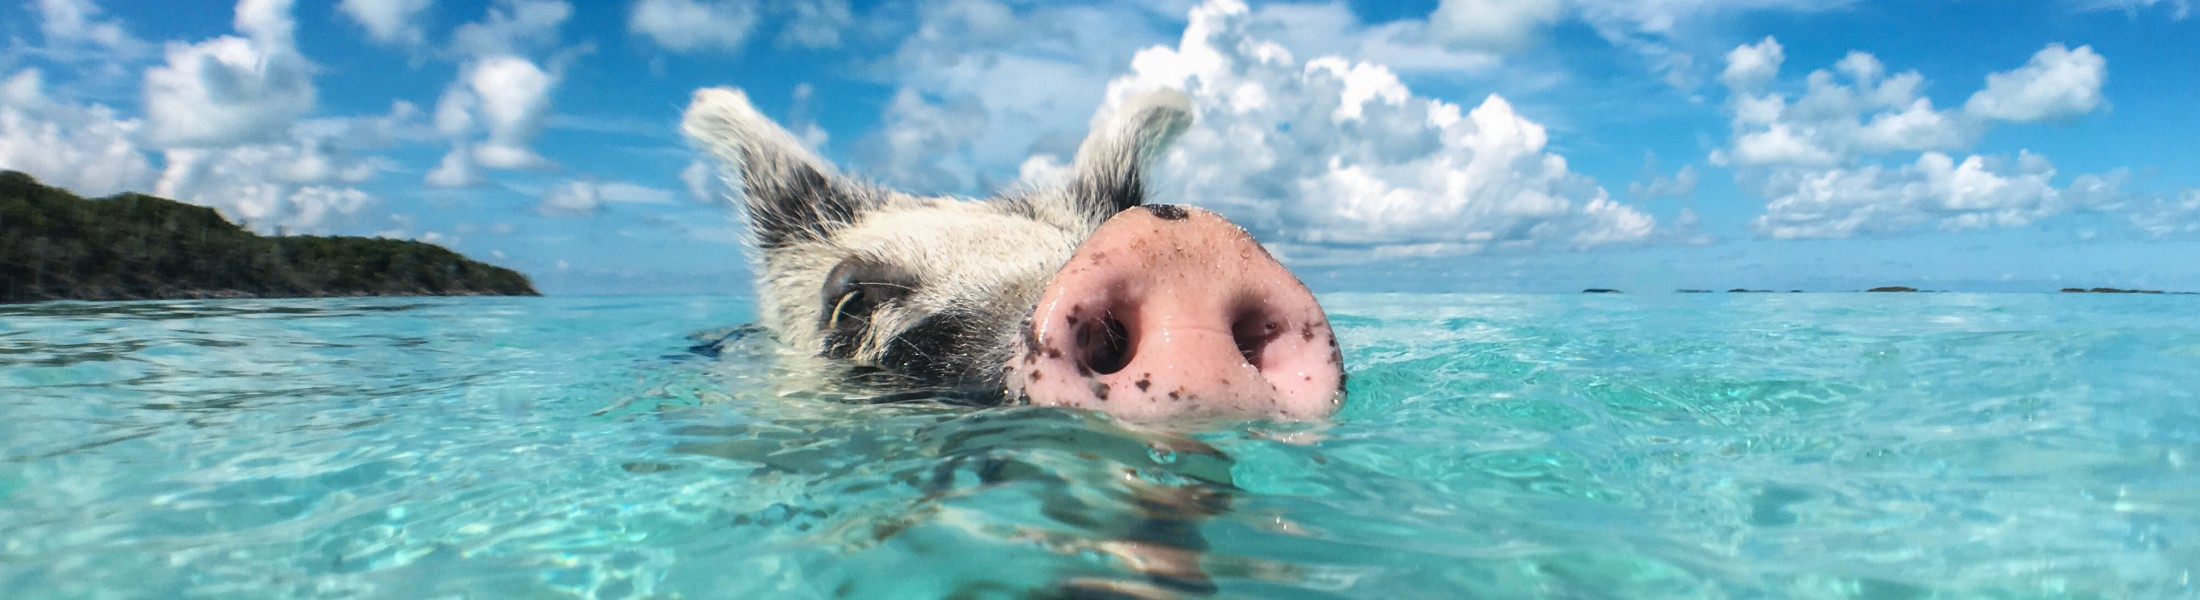 Swimming pig in the Bahamas in the Caribbean